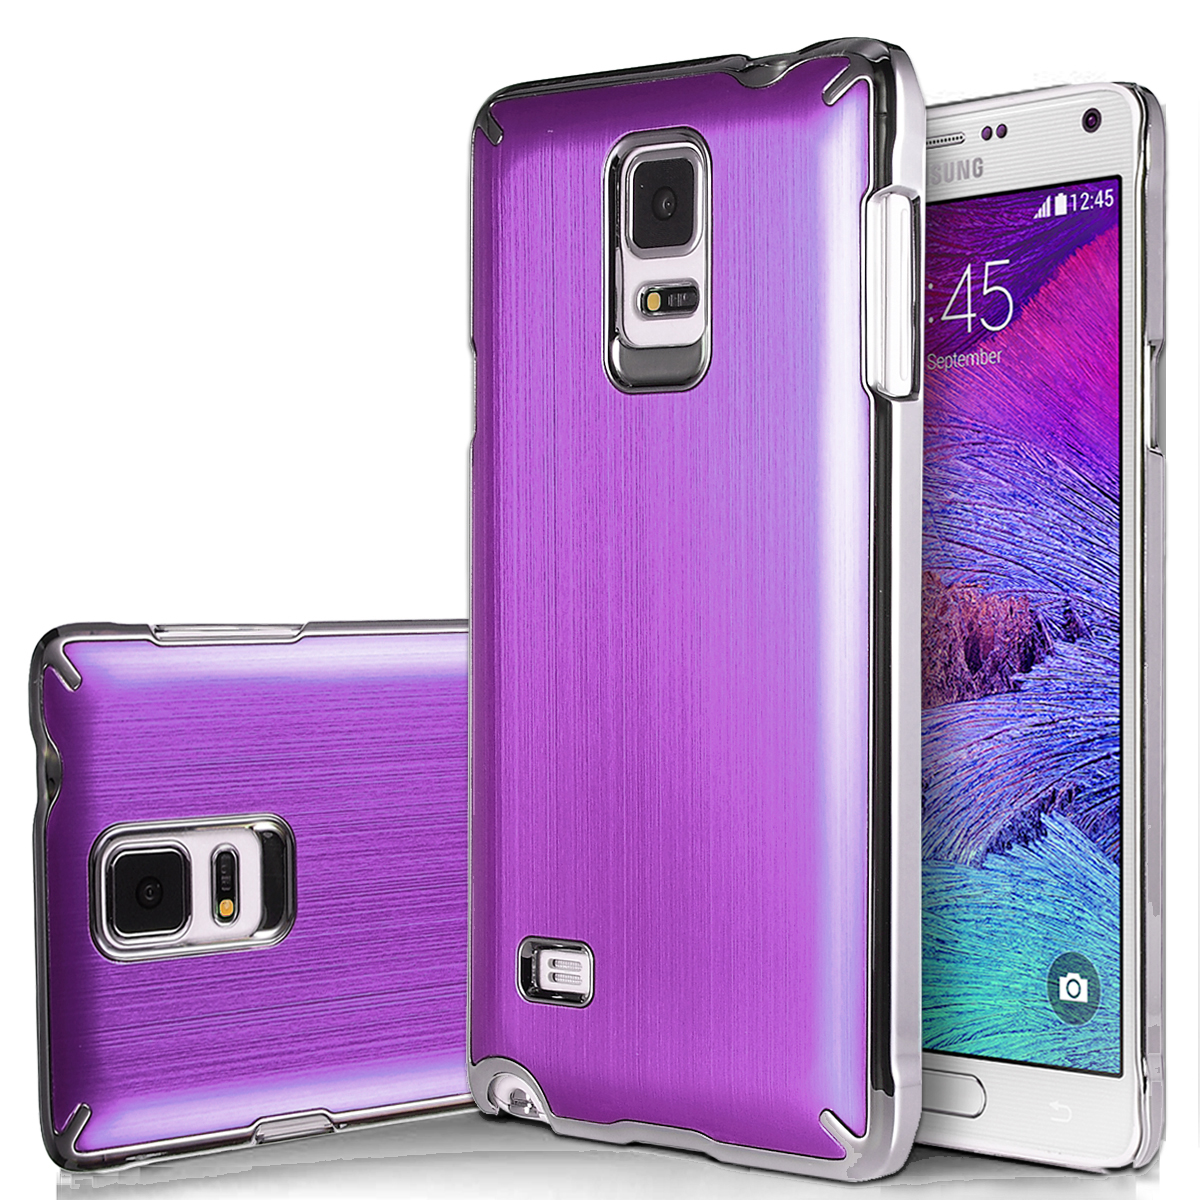 Note 4 Case, Galaxy Note 4 Case, ULAK Samsung Galaxy Note 4 Case Brushed Chrome Luxury Steel Aluminum Plastic Cover Hard Back Protective Case for Galaxy Note 4 (2014)